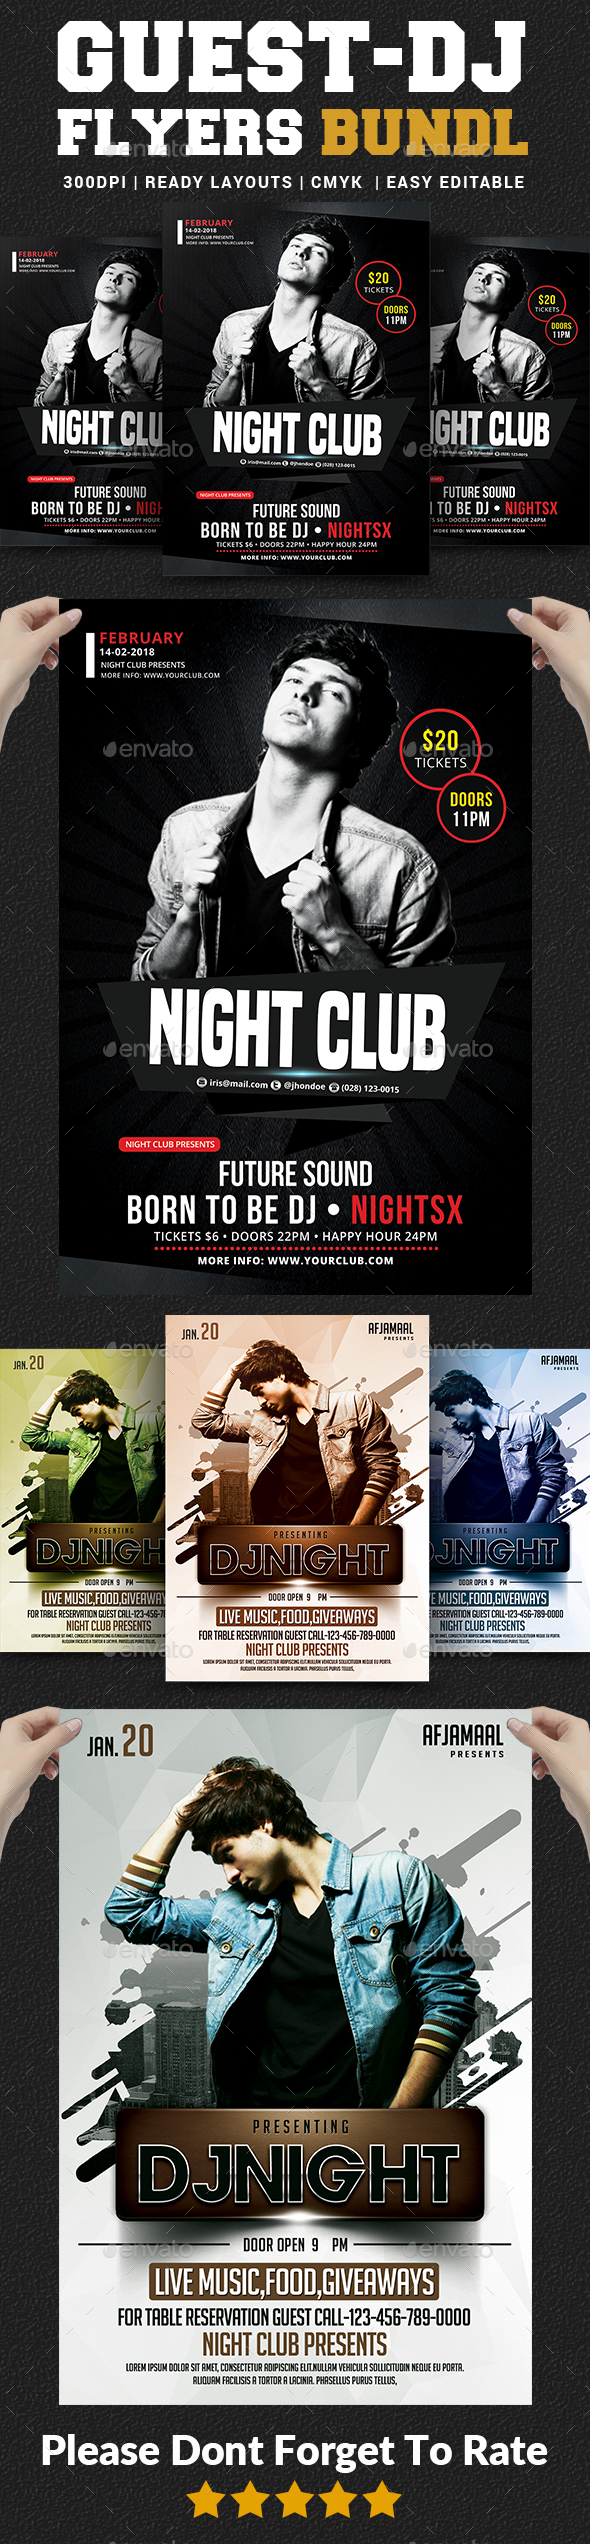 Guest DJ Party Flyer Bundle - Clubs & Parties Events